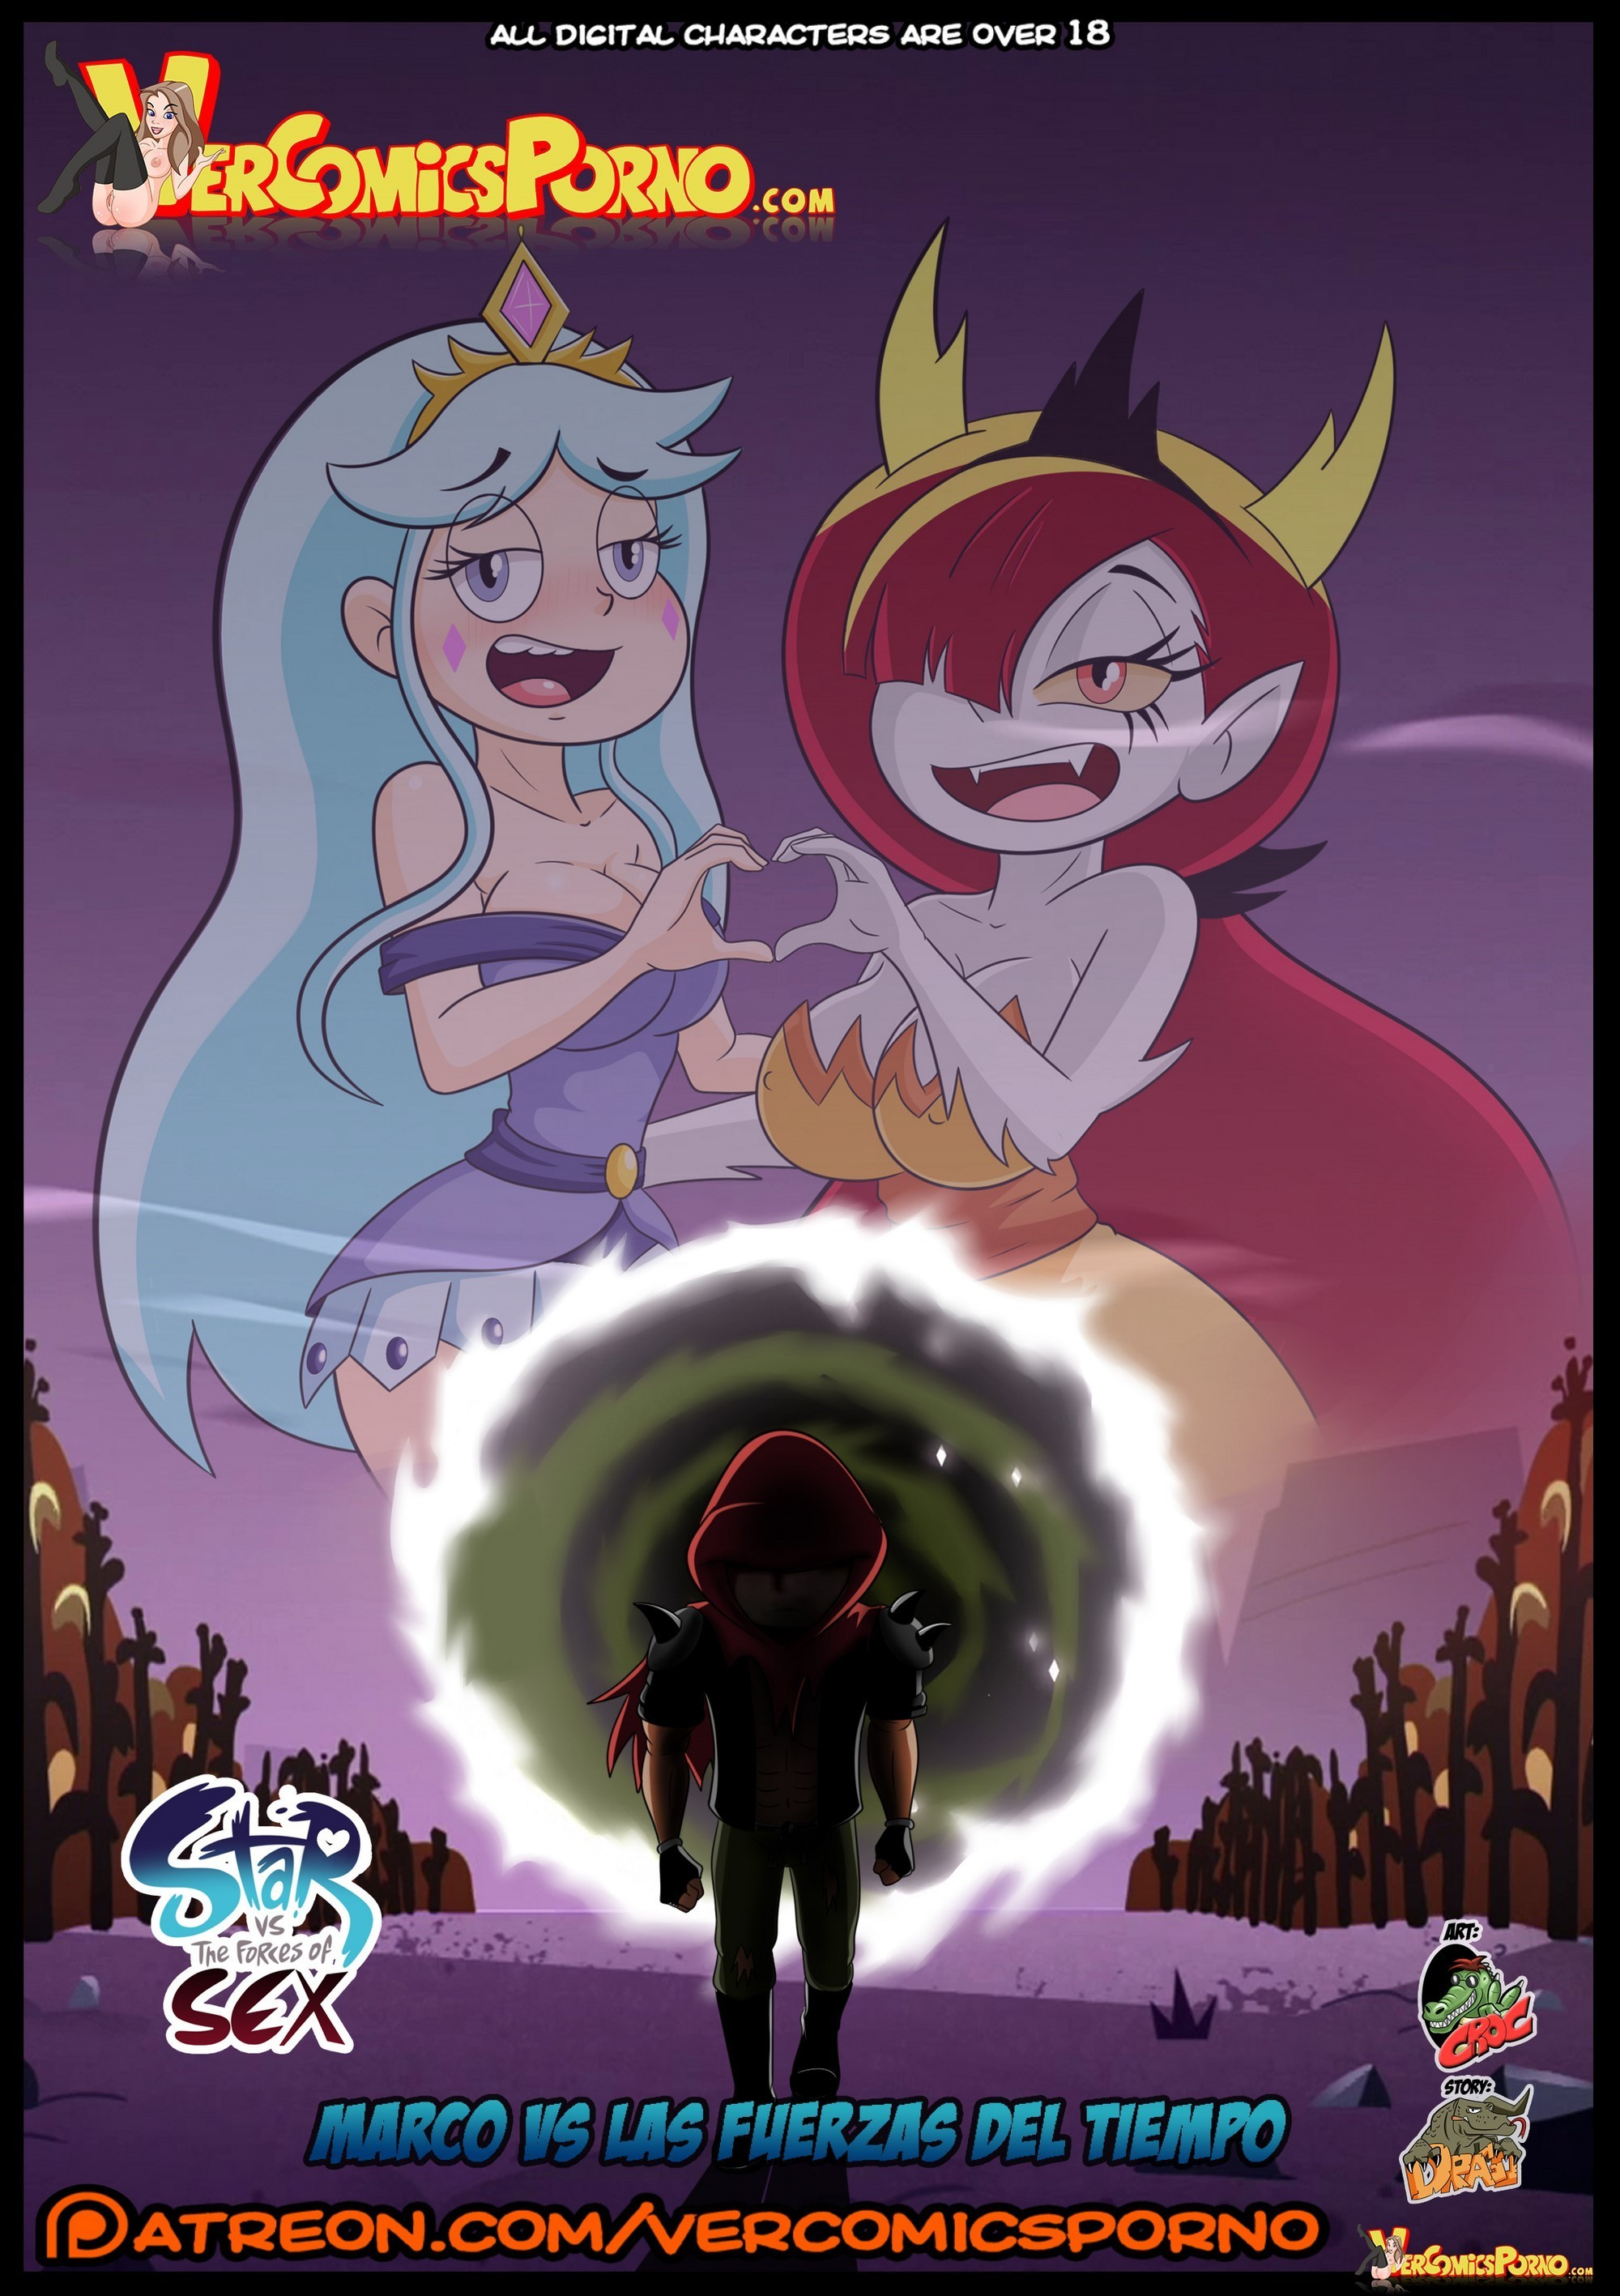 Marco and star hentai porn